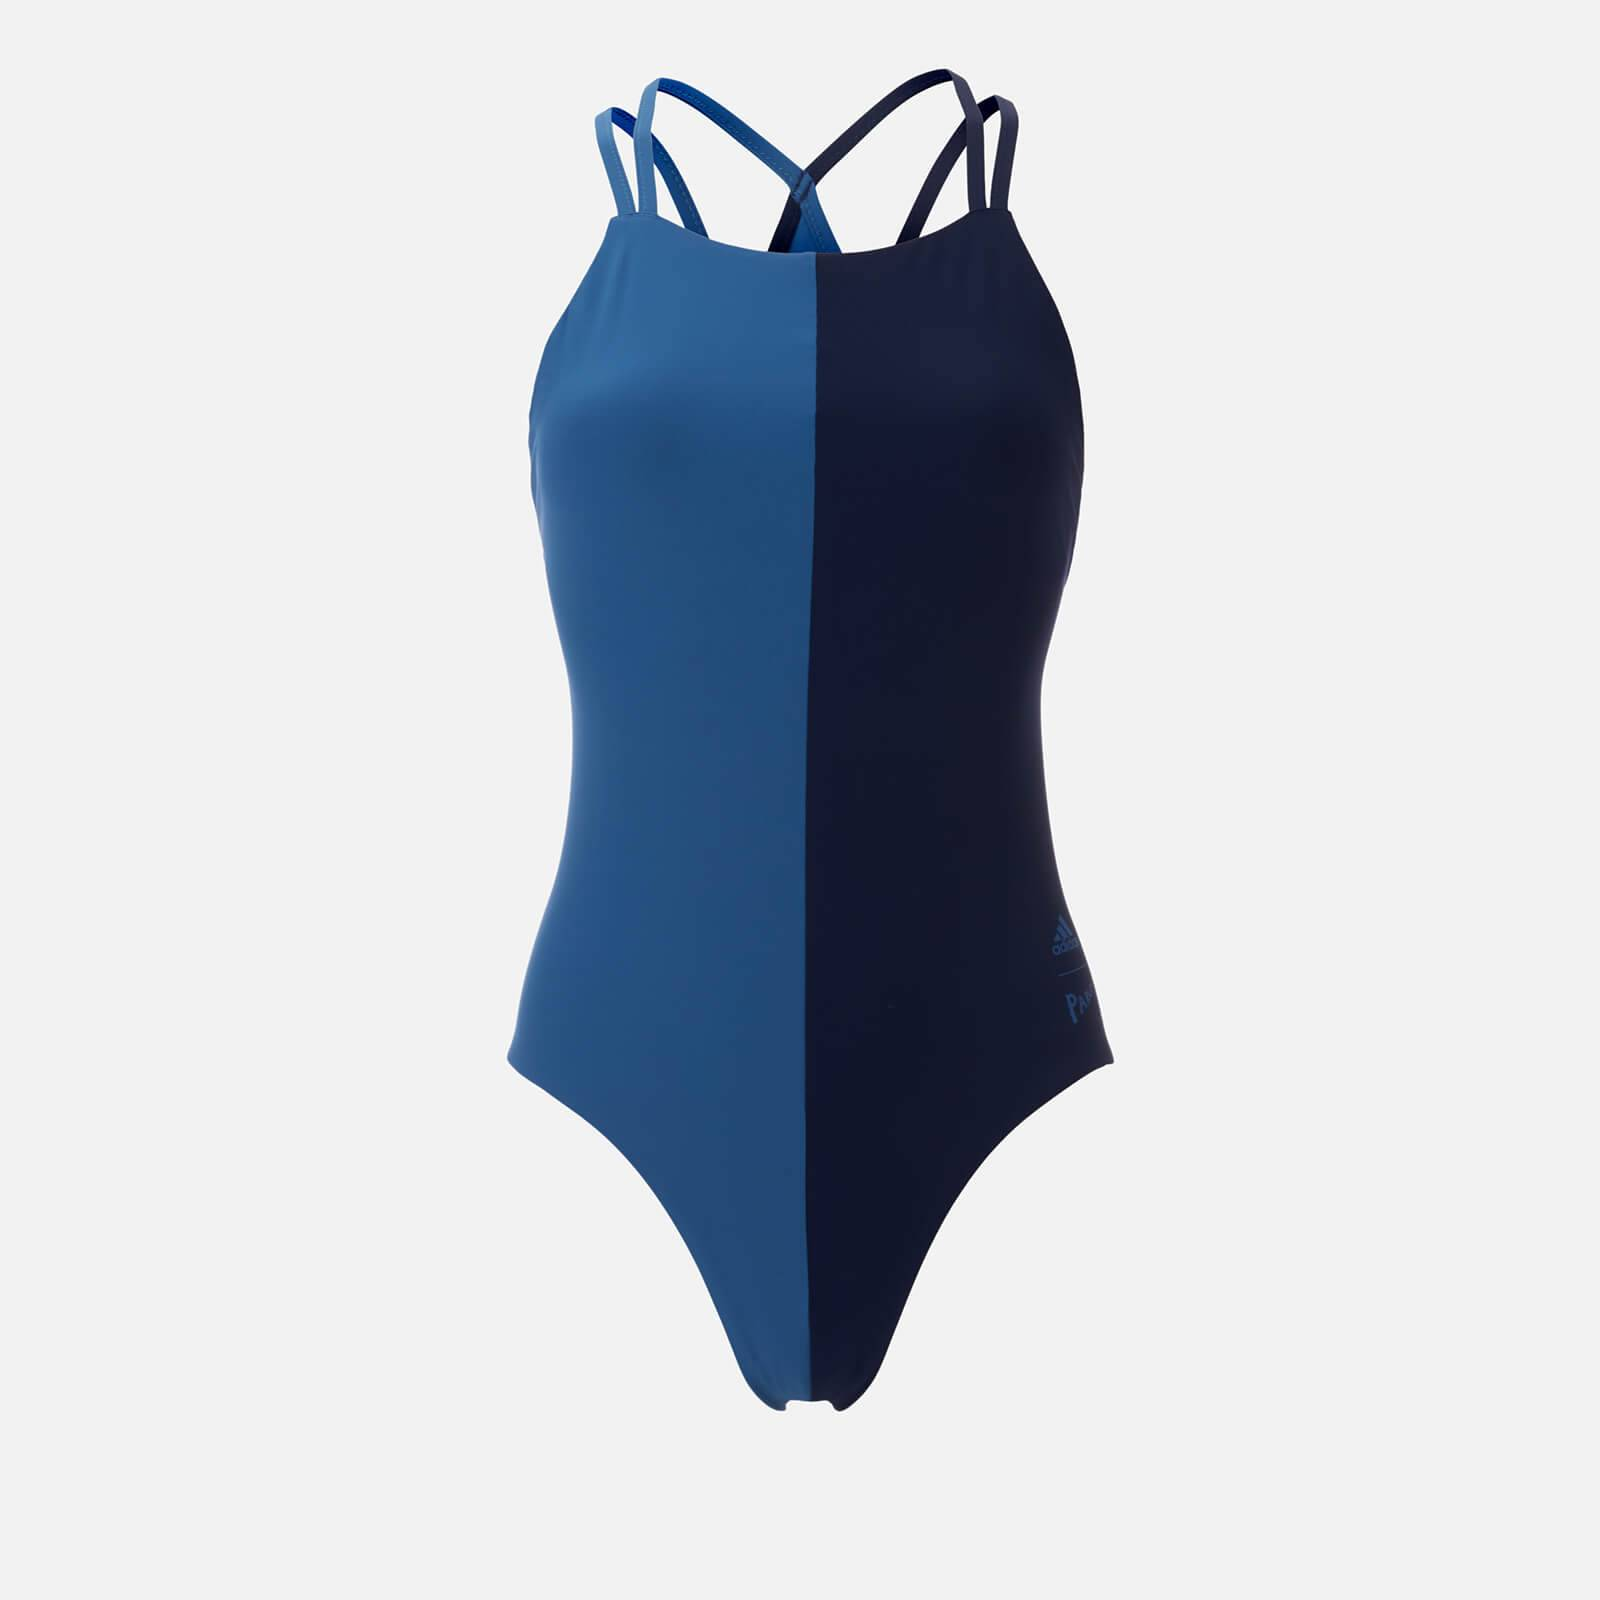 adidas Women's Fit Parley Suit - Blue/Black - 30 Inch (Chest Size) - Multi